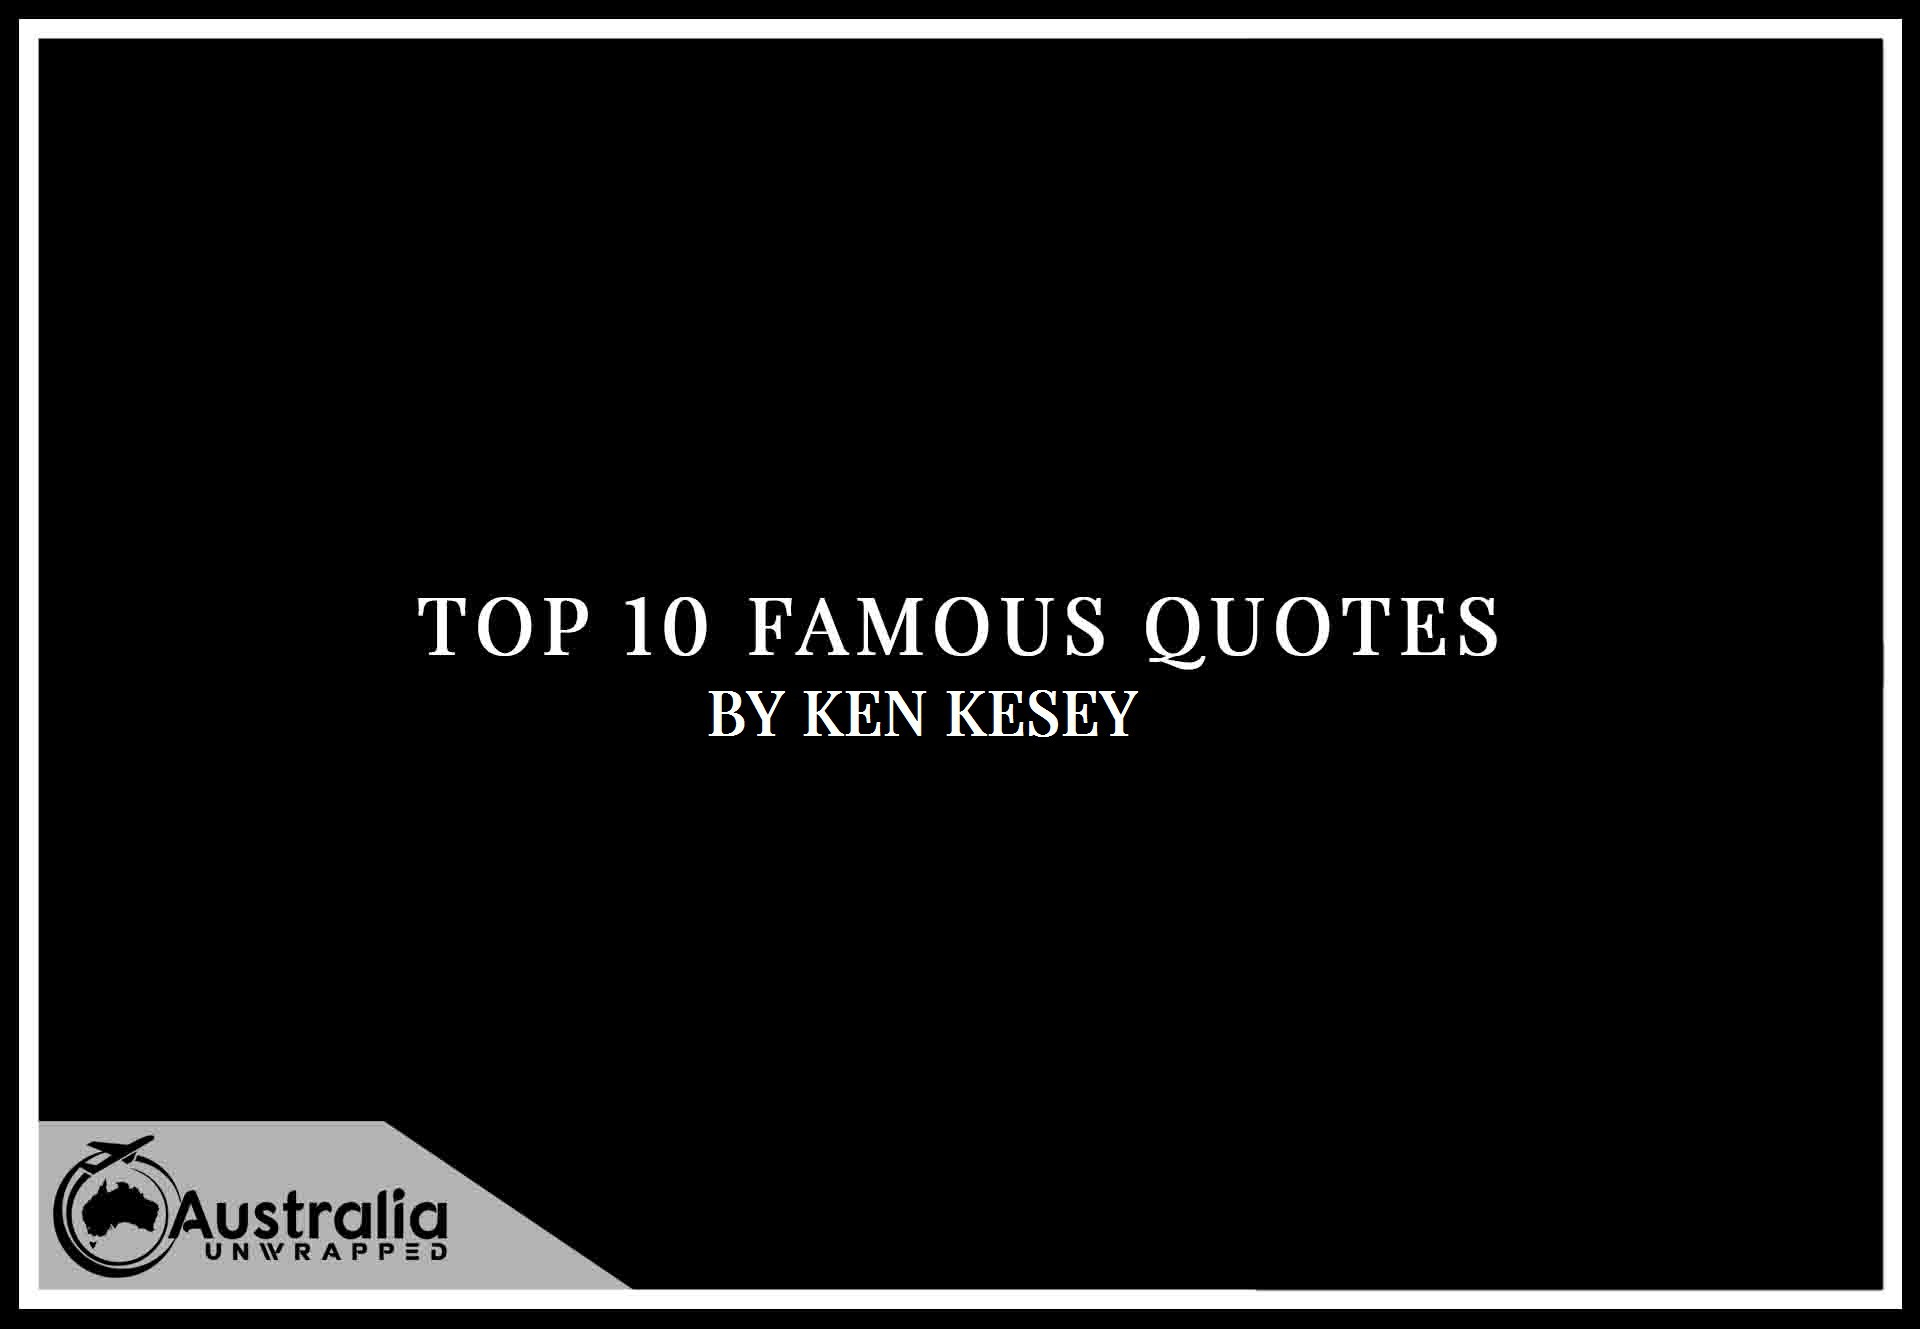 Ken Kesey's Top 10 Popular and Famous Quotes